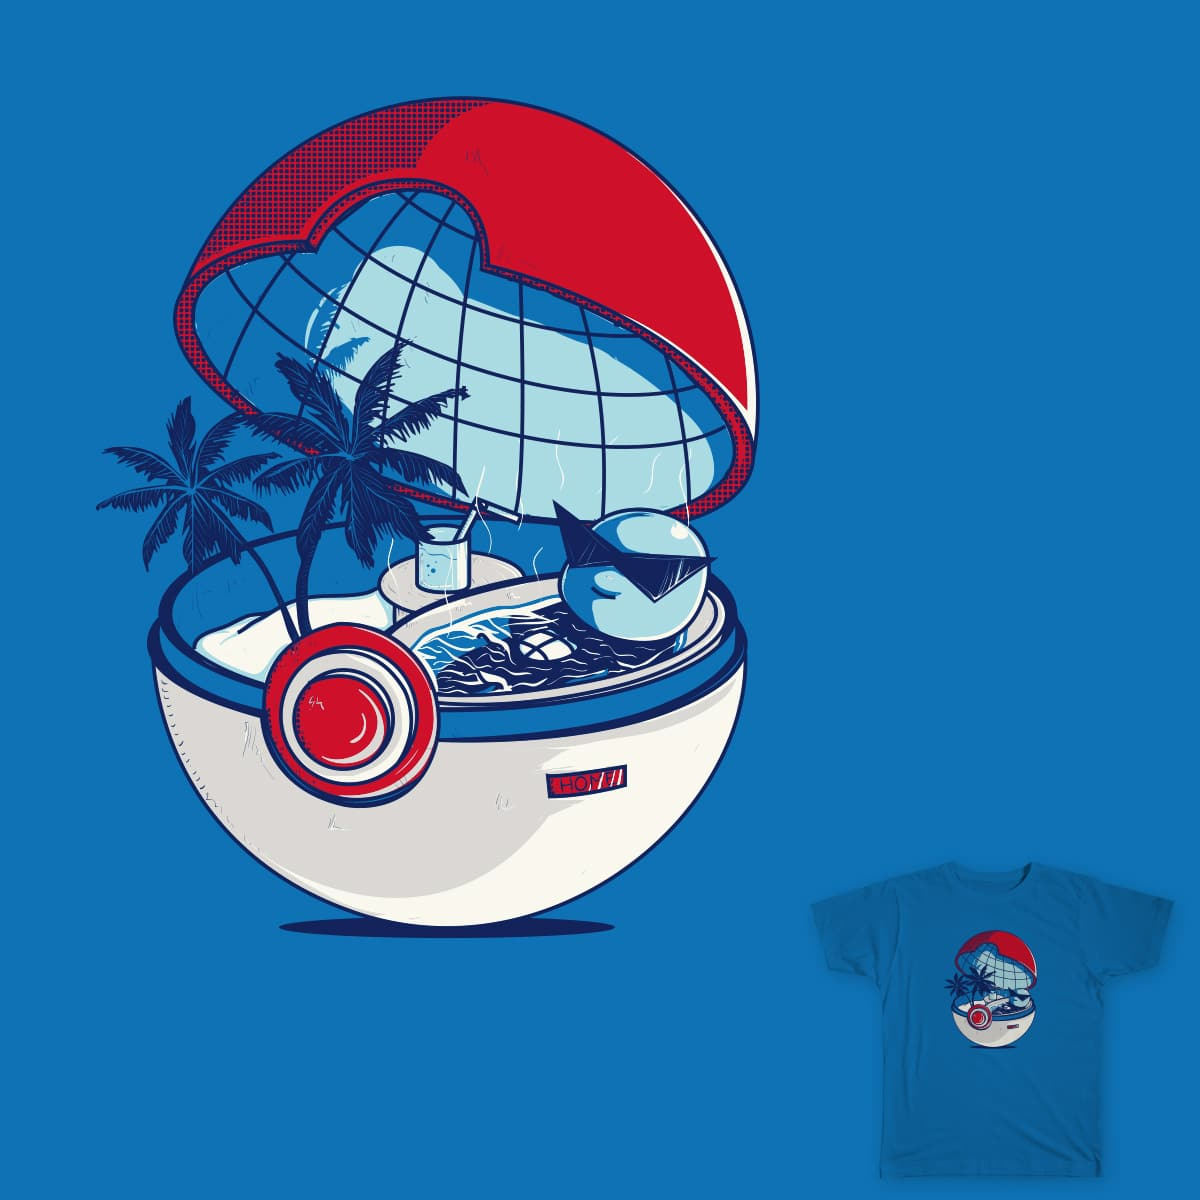 Blue Pokehouse by DonnieArt on Threadless